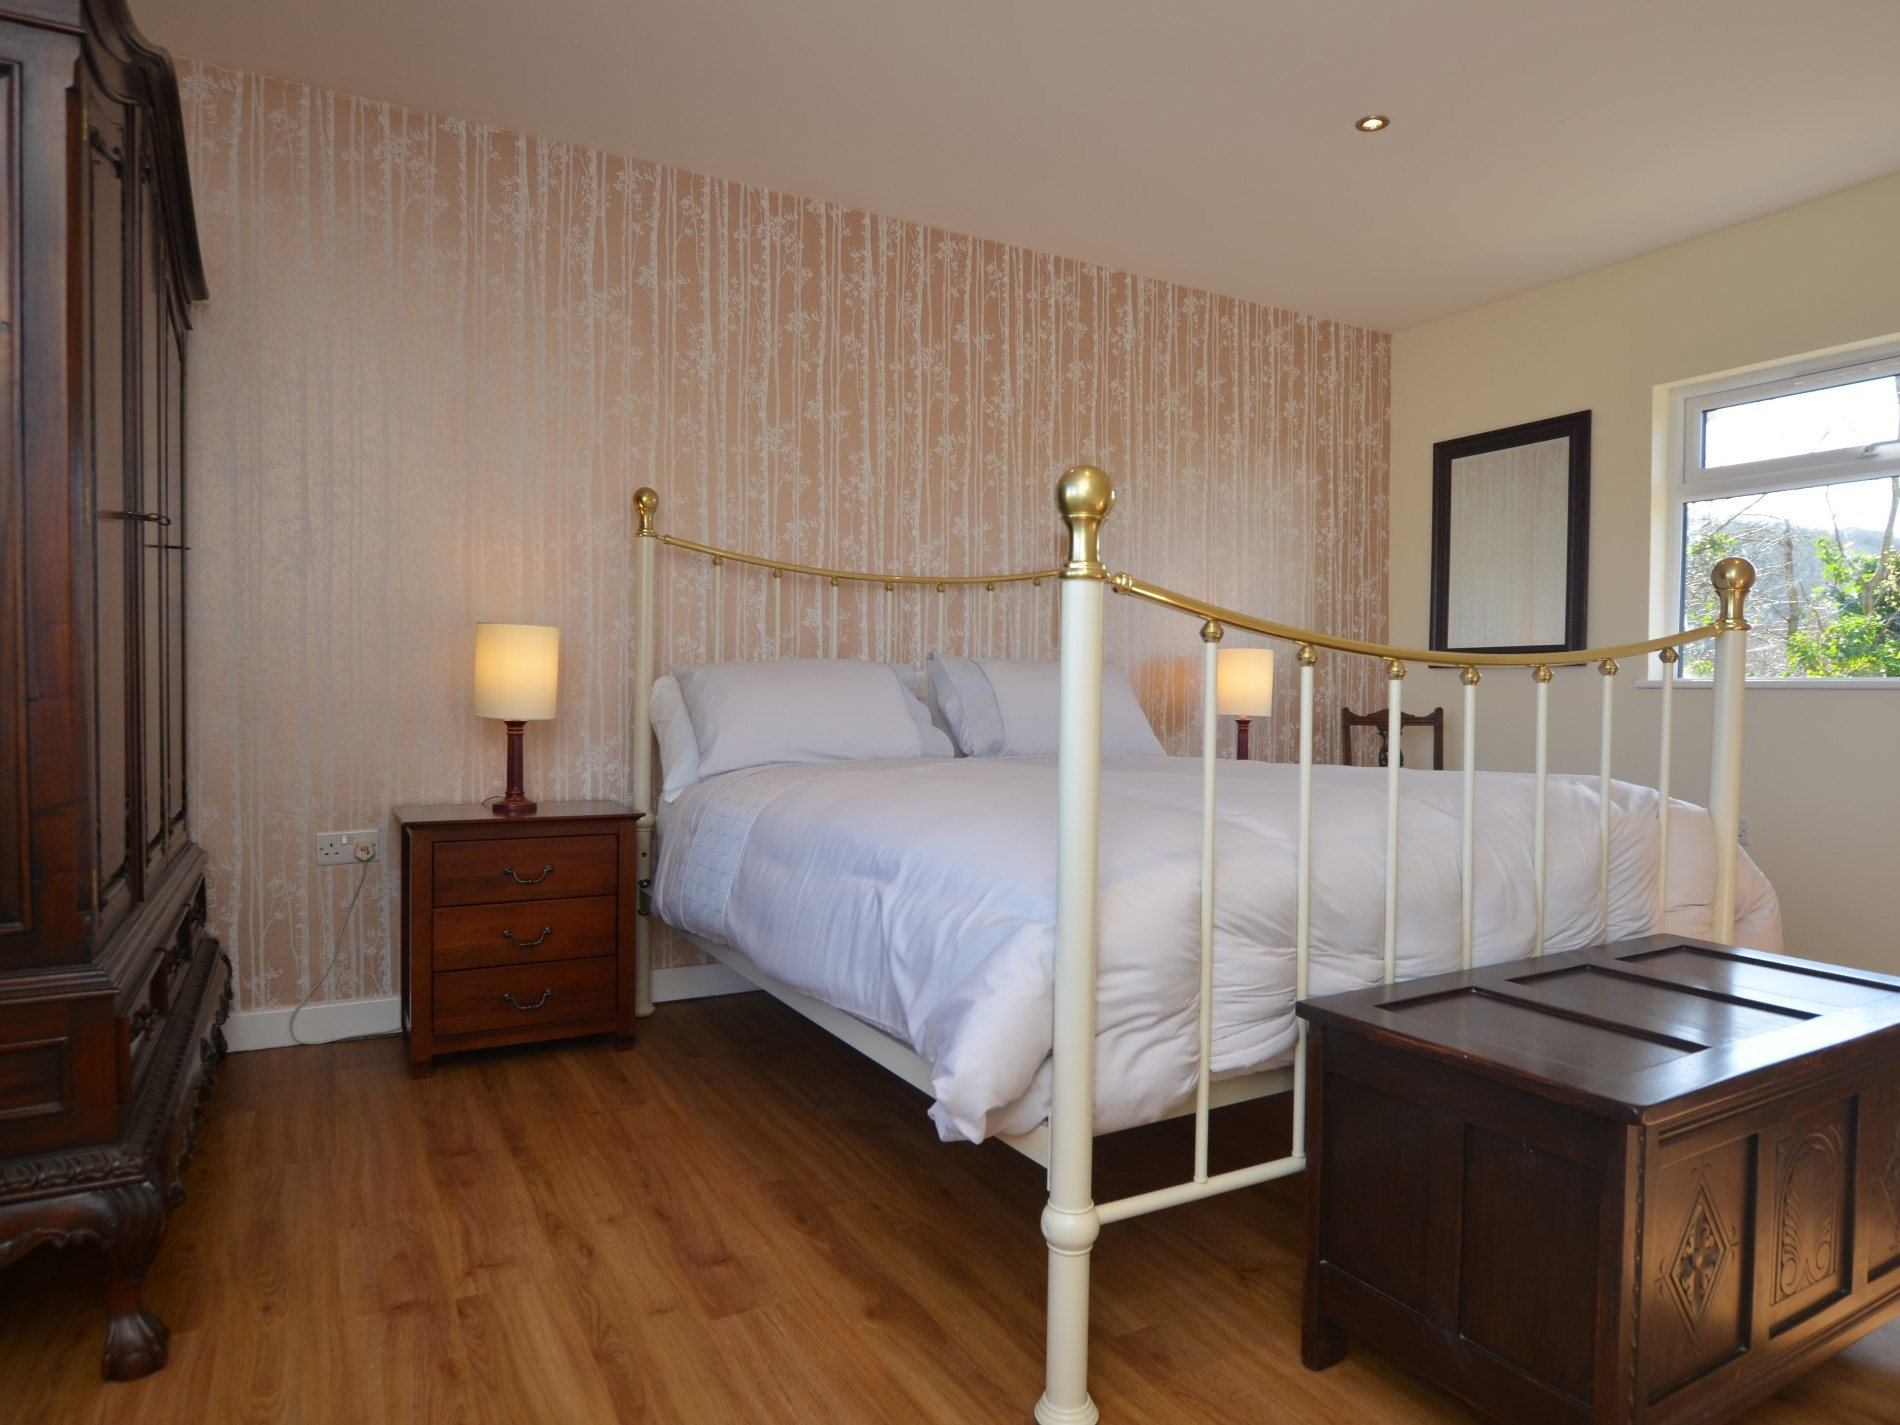 Beautifully presented king-size bedroom